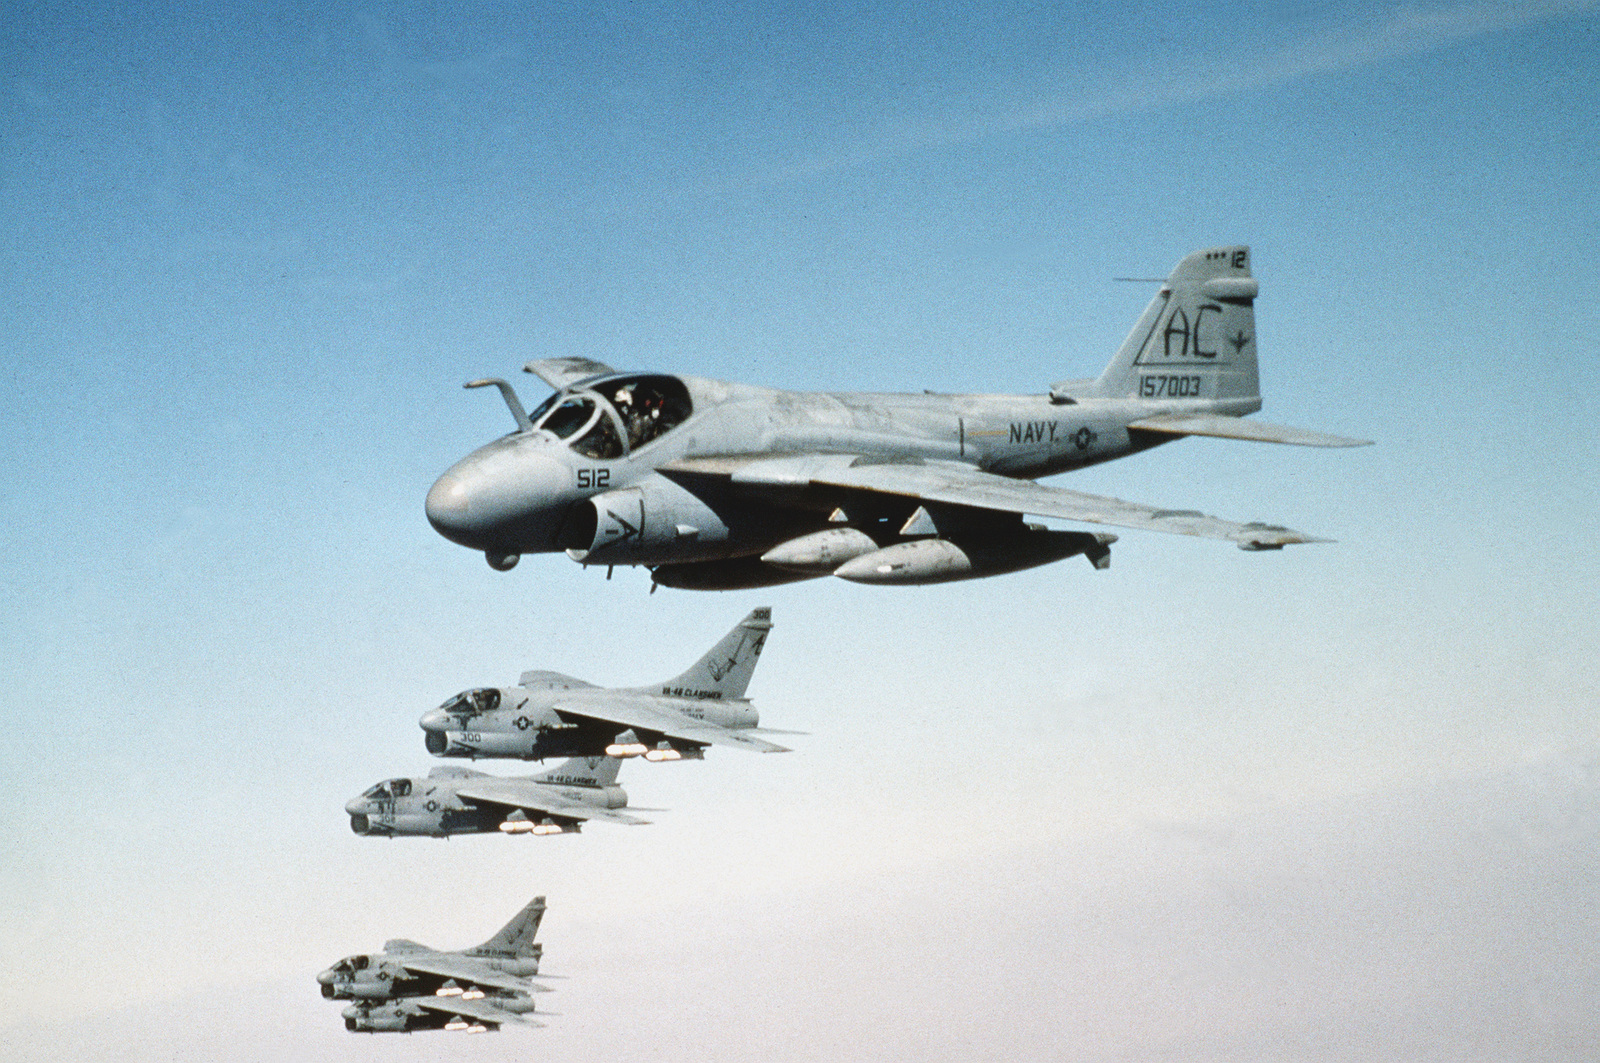 An A-6E Intruder aircraft and Attack Squadron 46 (VA-46) A-7E Corsair II aircraft fly in formation as they prepare for refueling during Operation Desert Storm. The Corsairs are armed with cluster bombs.